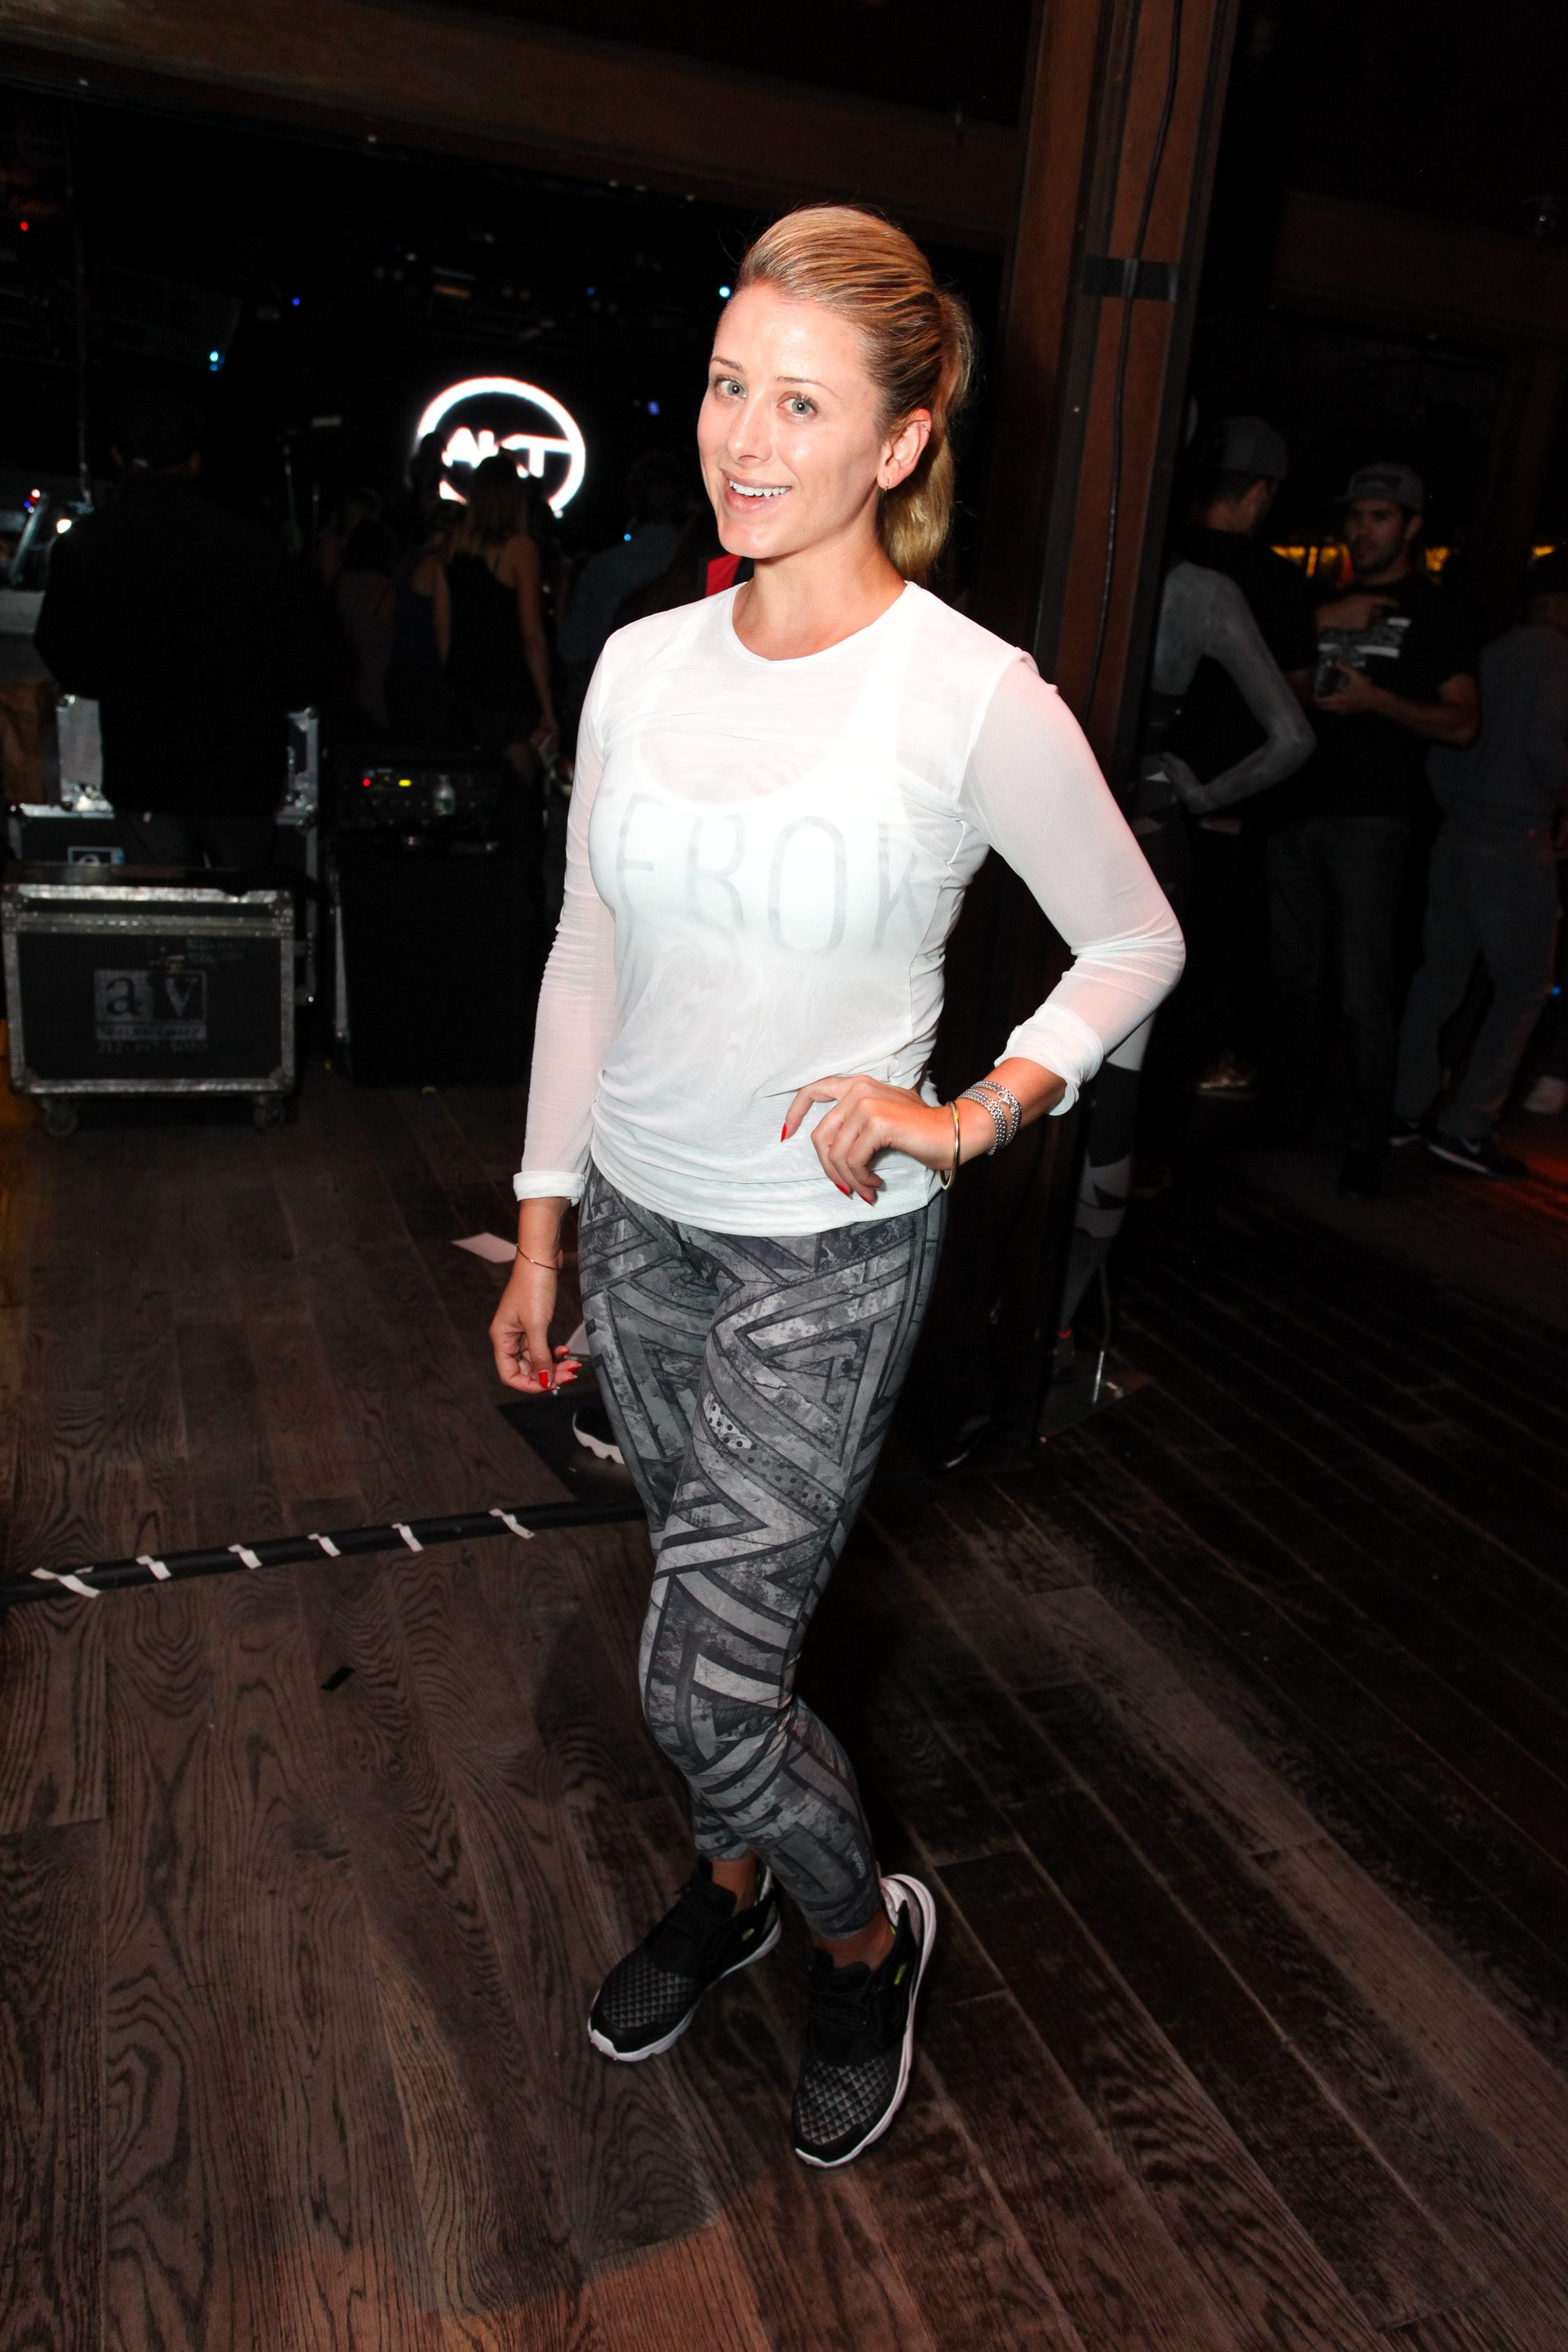 NEW YORK, NY - SEPTEMBER 16: Lo Bosworth attends The Reebok #girlswithgrit showcase at Marquee on September 16, 2015 in New York City. (Photo by Donald Bowers/Getty Images for Reebok)